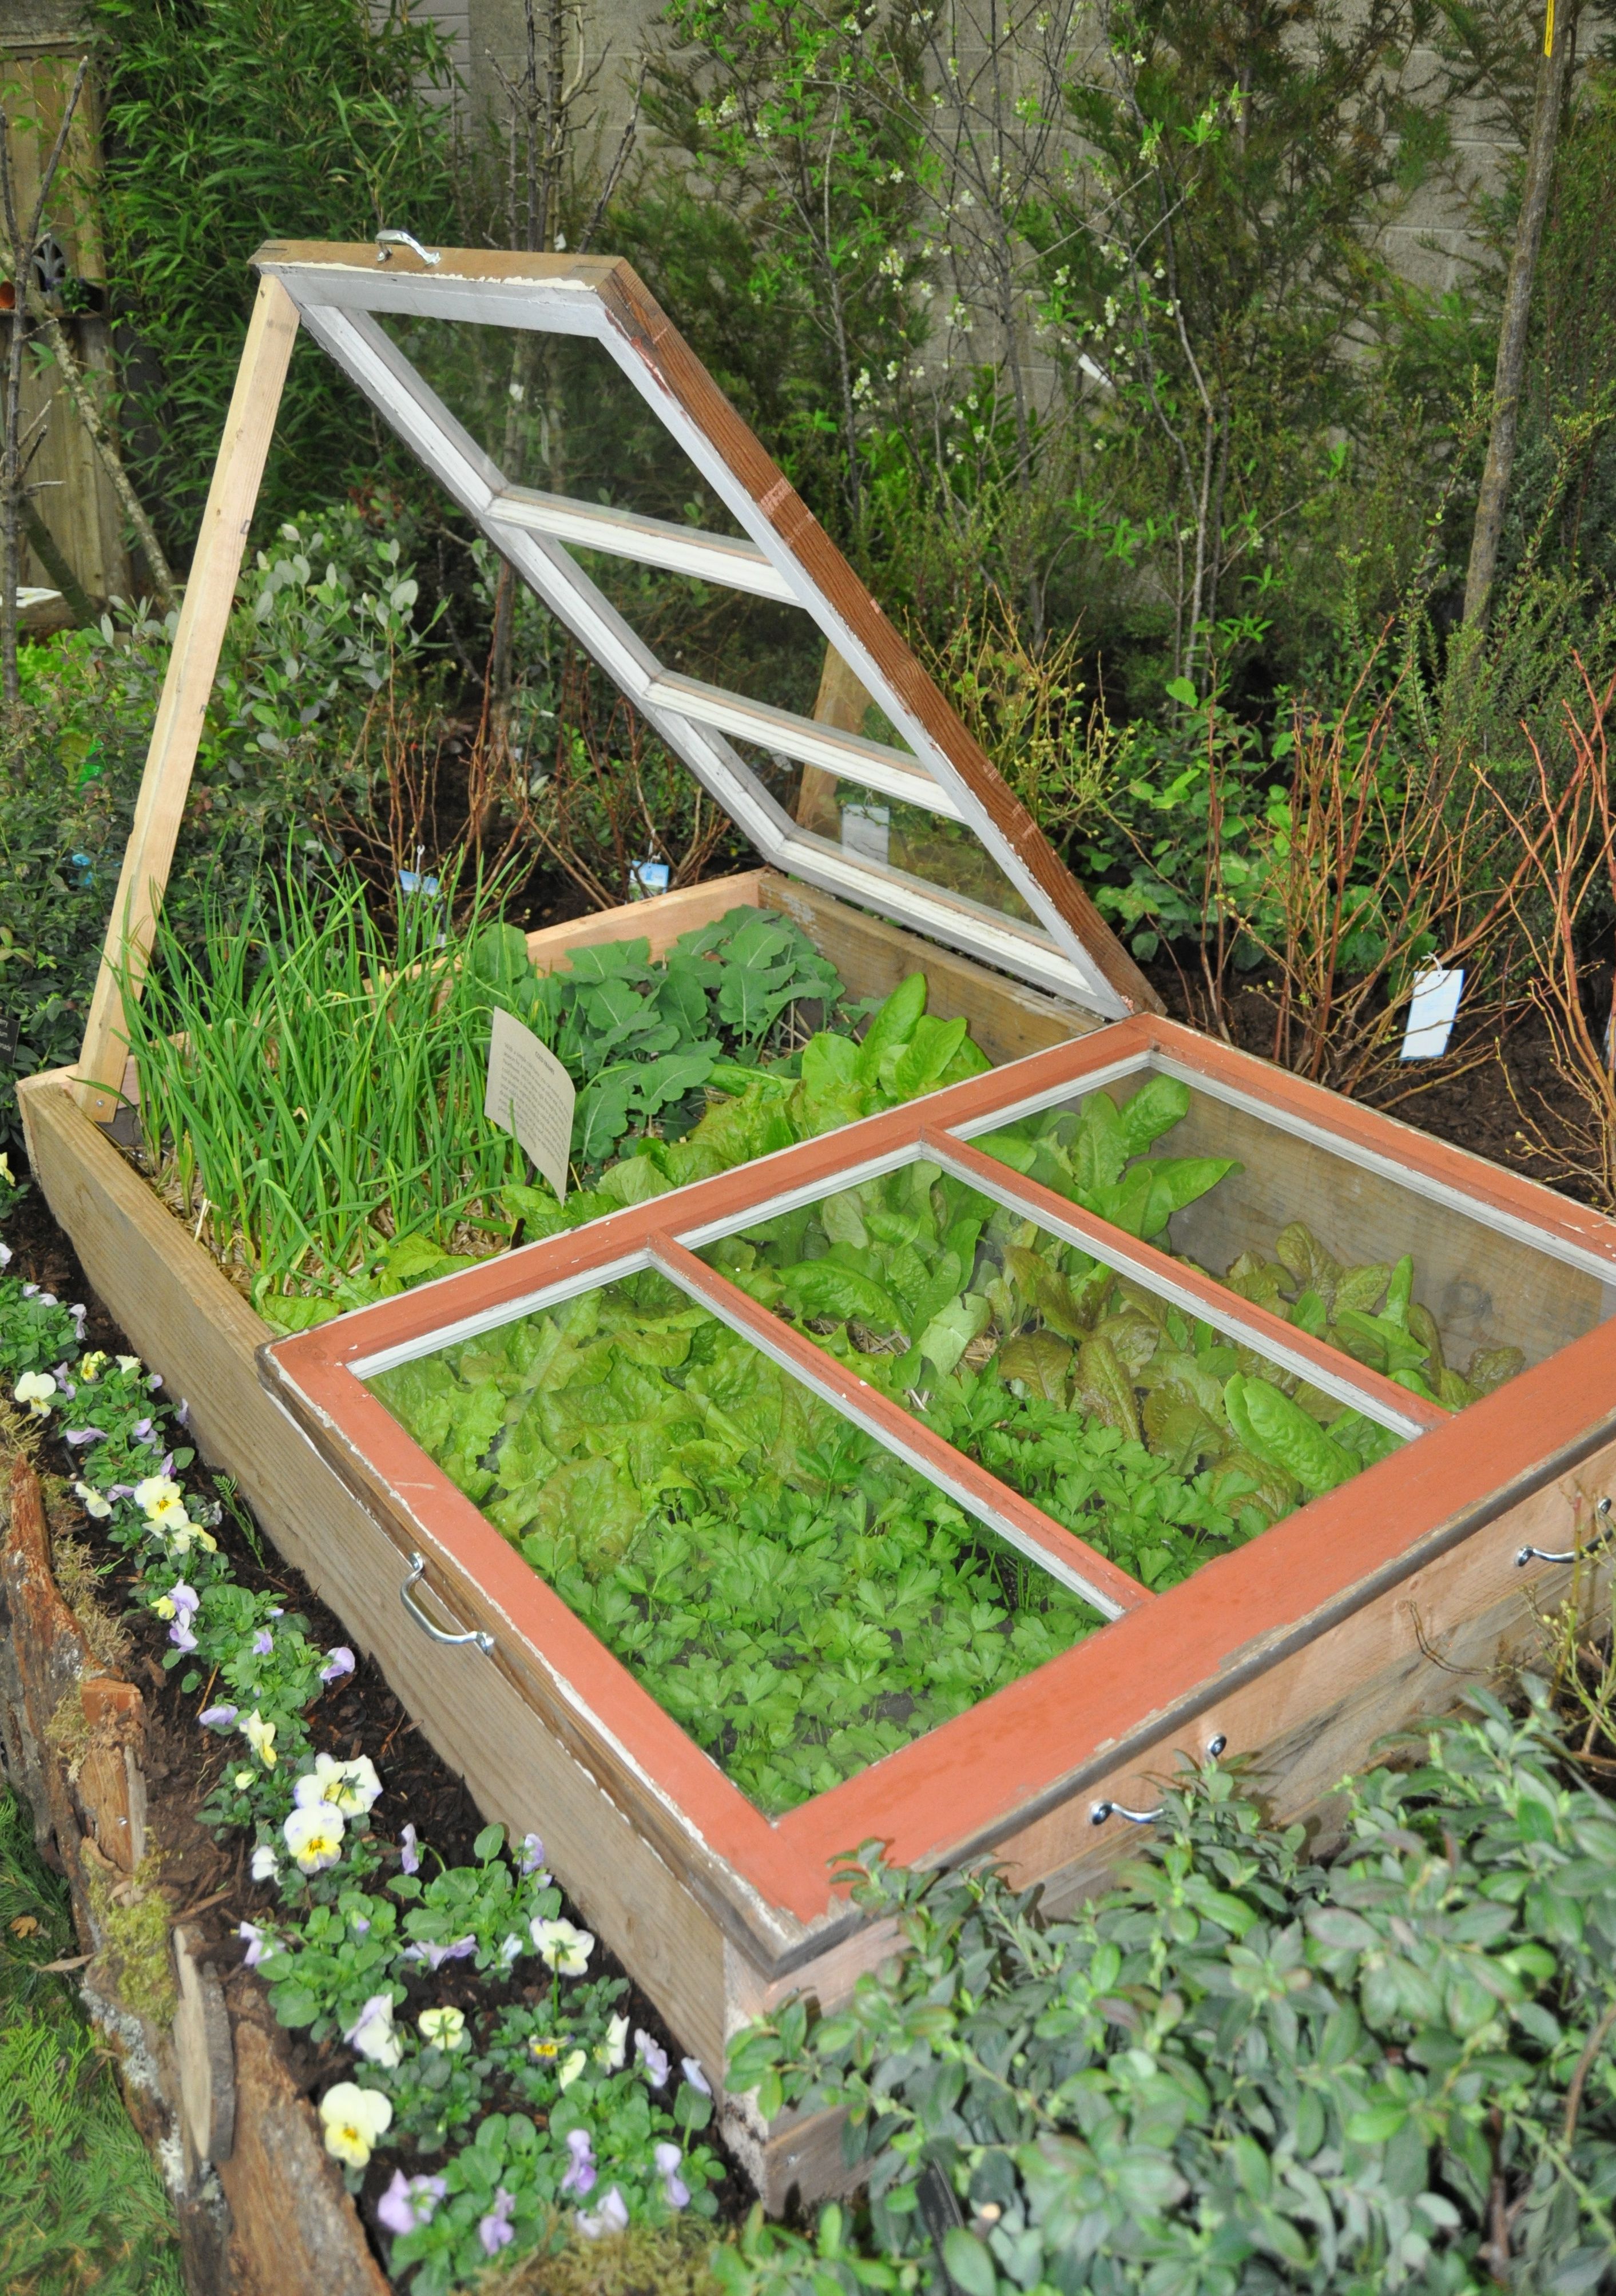 Gardening: Cold frame helps plants start early, stay late | The ...